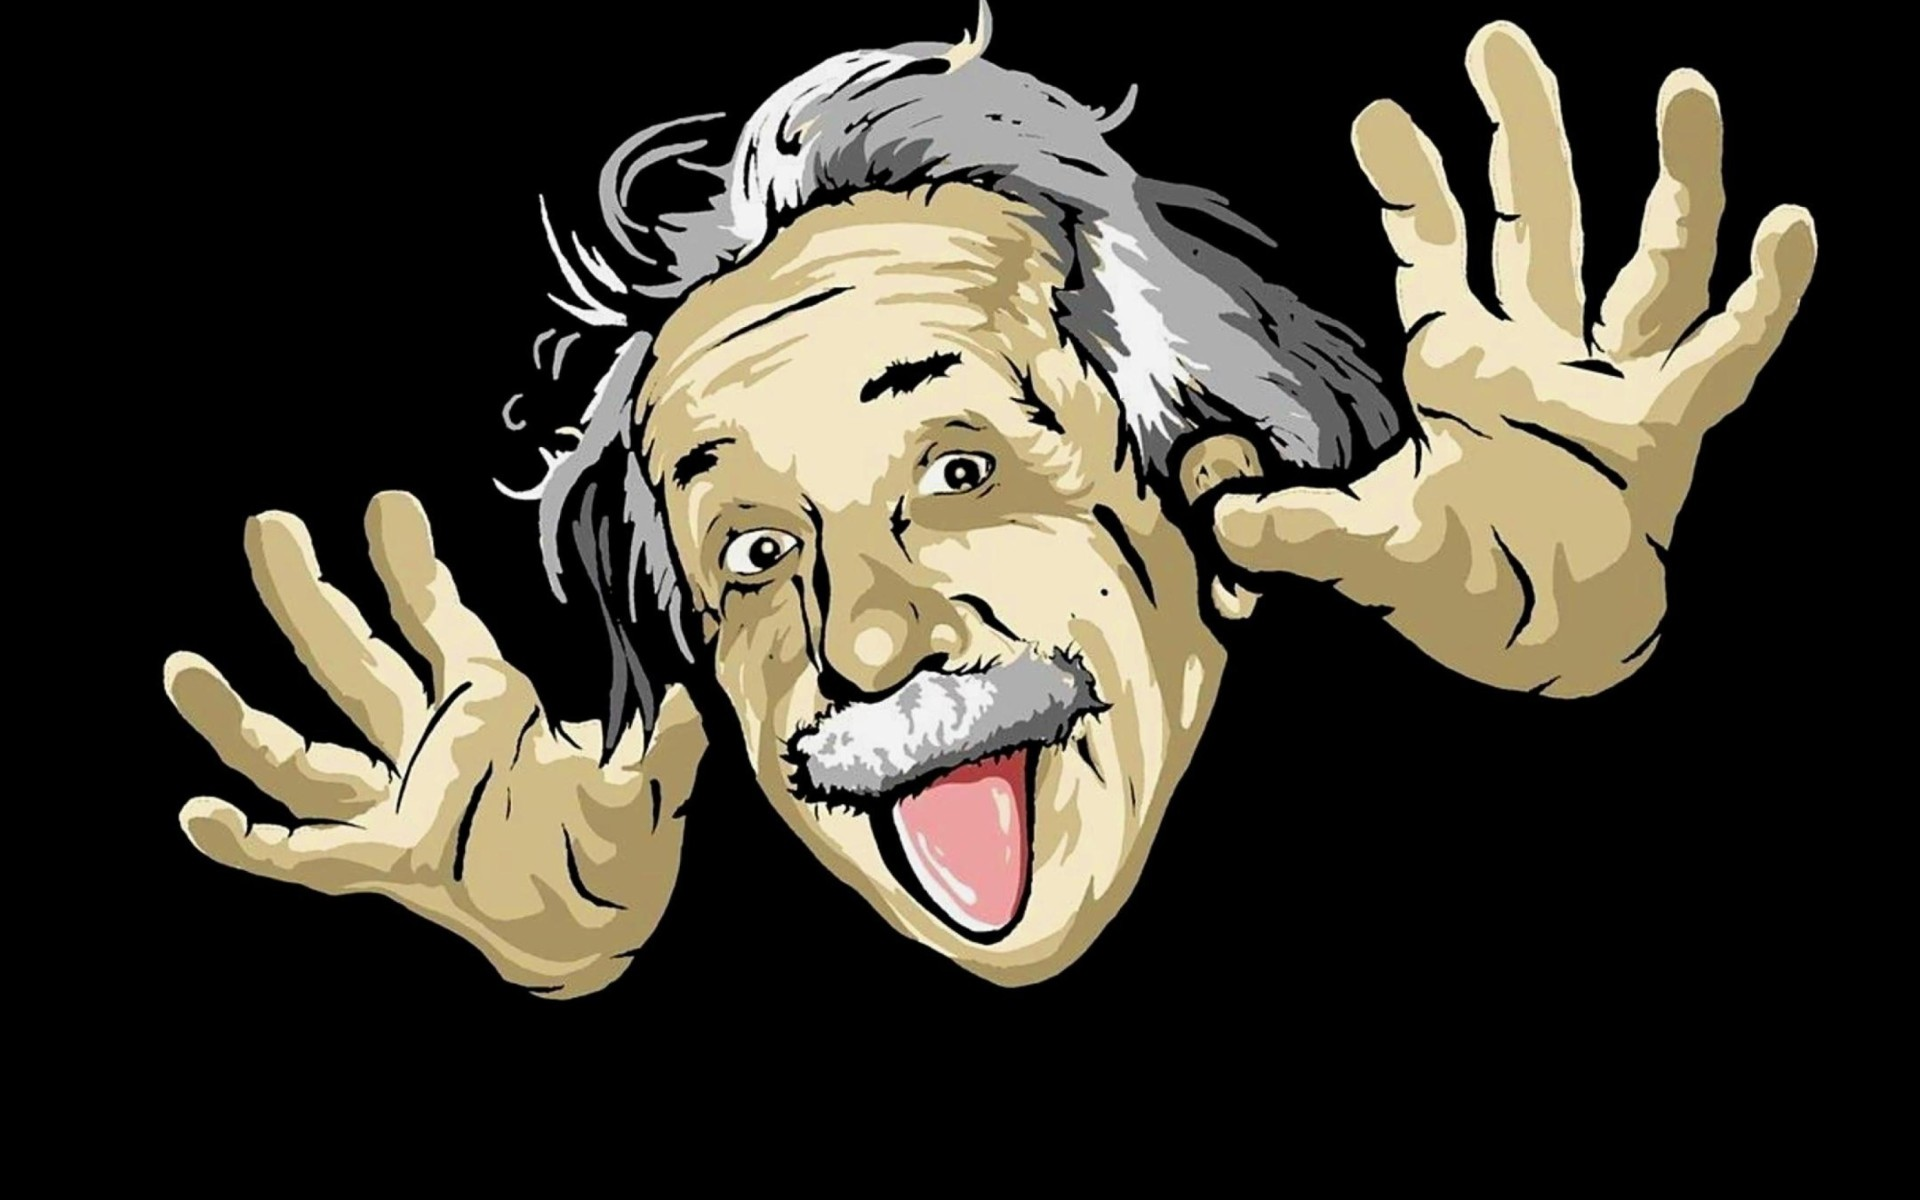 Albert einstein wallpaper wallpapertag - Albert einstein hd images ...